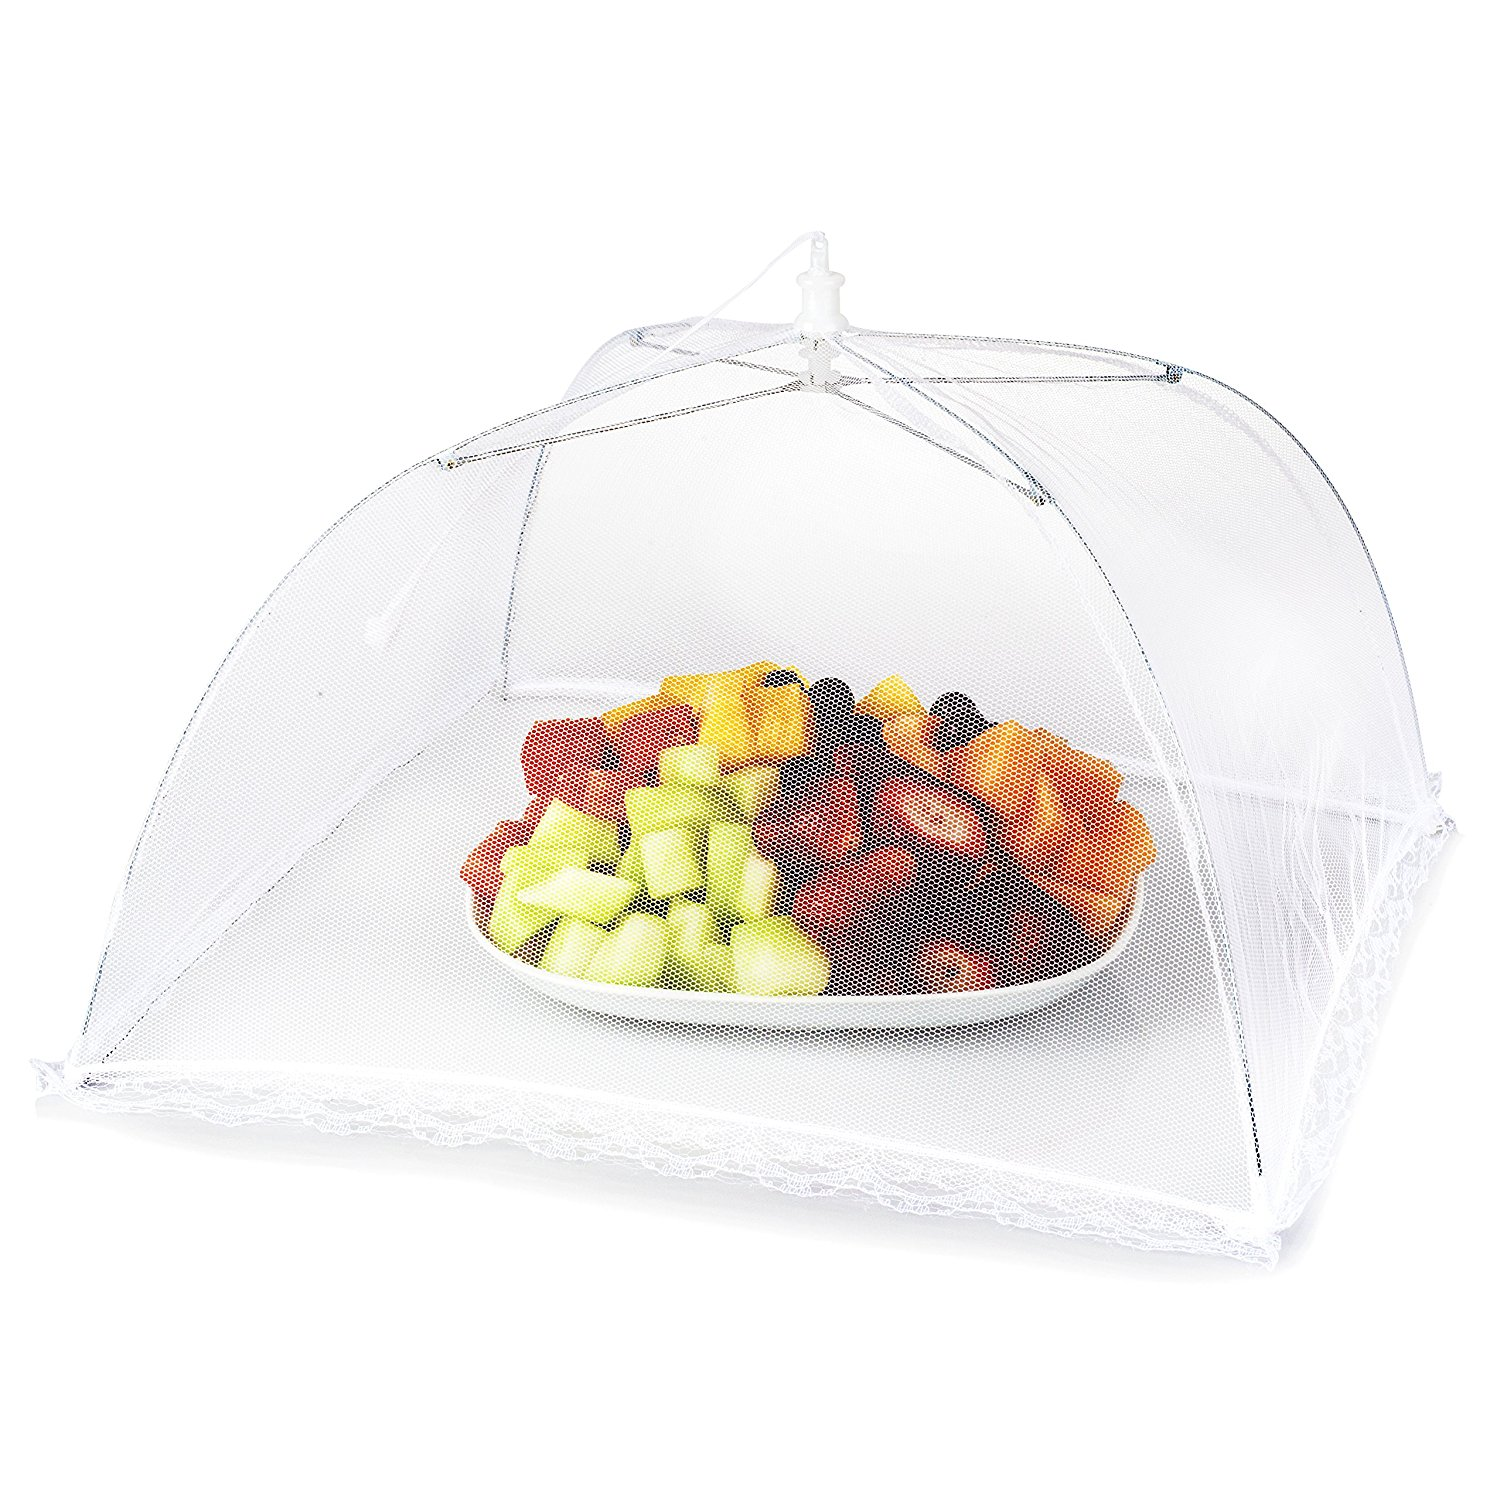 Get Quotations · Mesh Picnic Food Tent Covers 6 Collapsible Umbrella Tents for Picnics BBQ C&ing  sc 1 st  Alibaba.com : rv tent covers - afamca.org